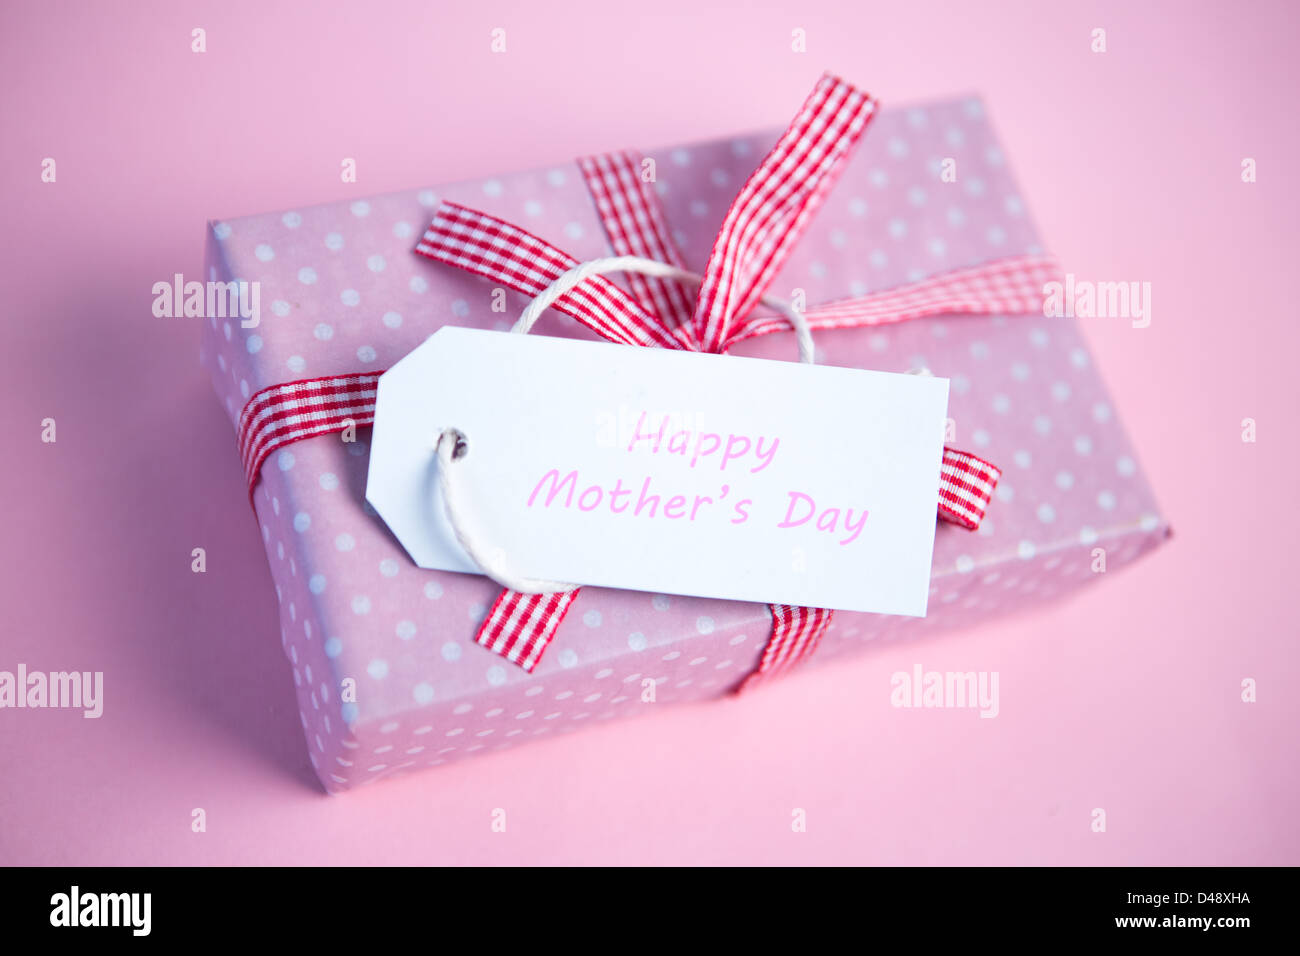 Happy Mothers Day Gift Tag Stock Photos & Happy Mothers Day Gift Tag ...